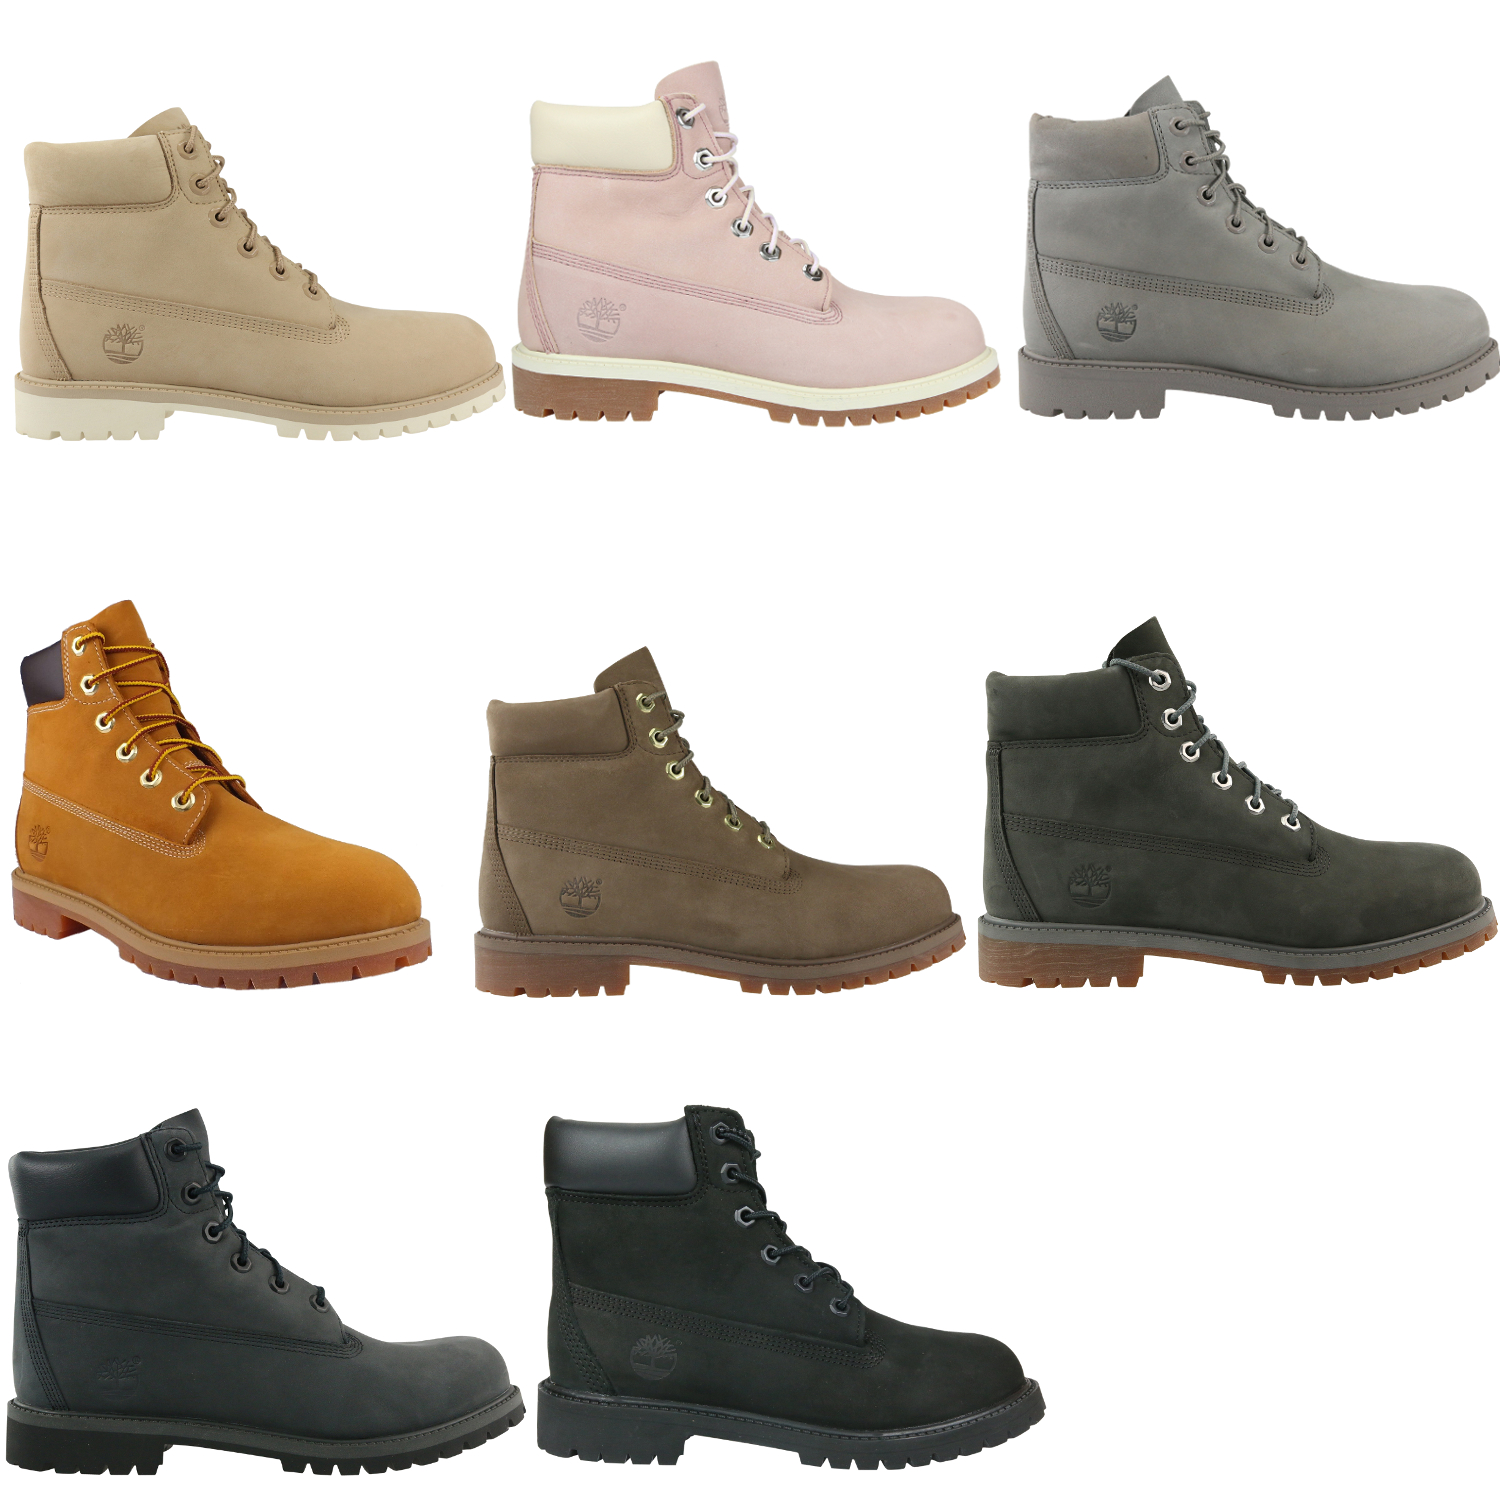 timberland 6 inch junior classic waterproof boot schuhe winterstiefel braun rosa ebay. Black Bedroom Furniture Sets. Home Design Ideas